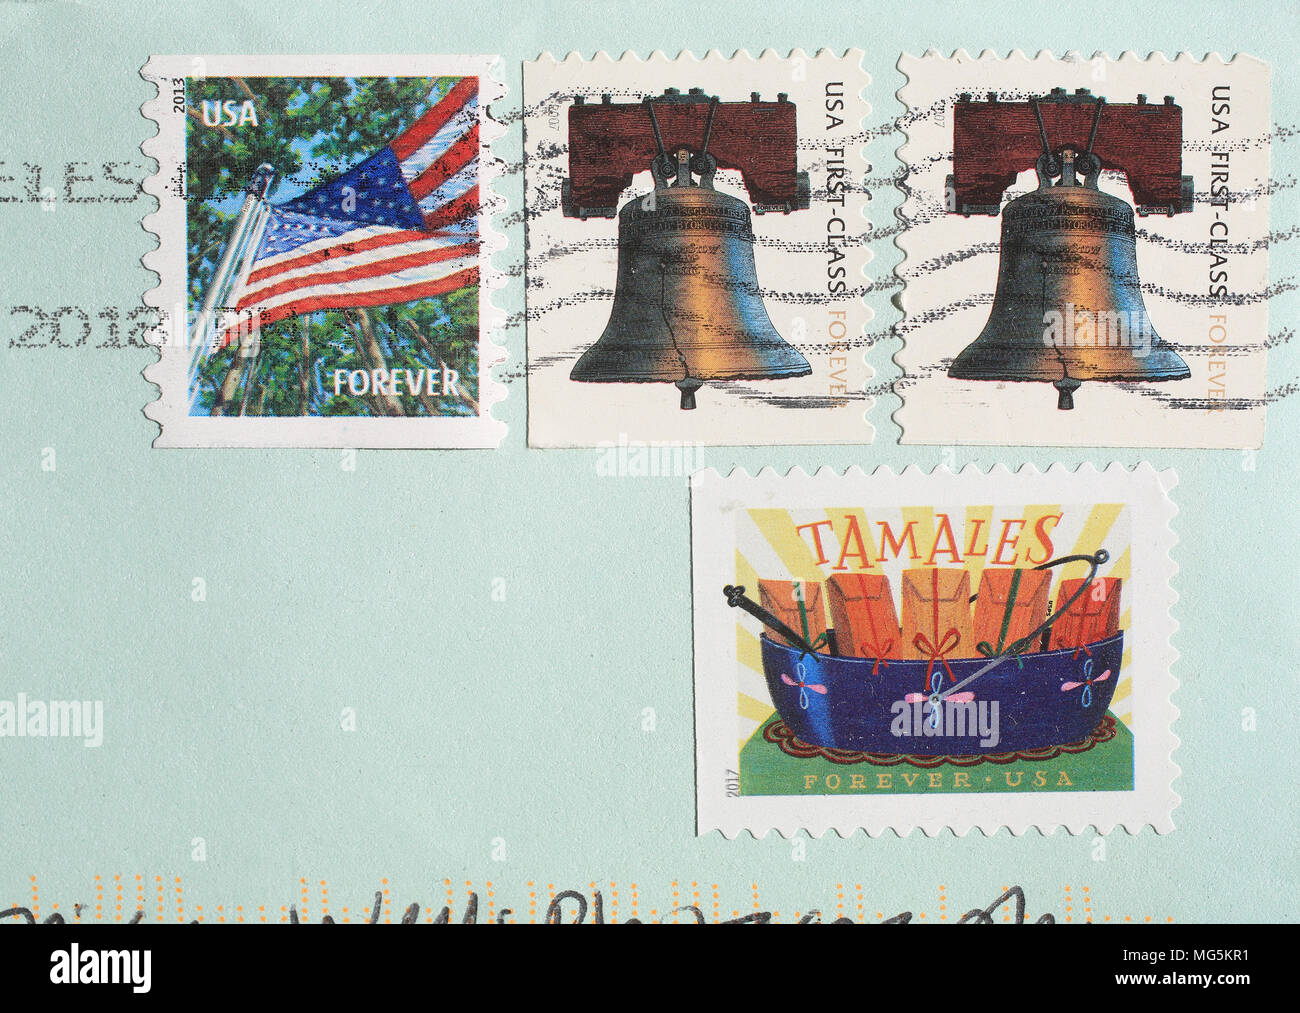 American stamps on envelope for international post to England, UK - Stock Image